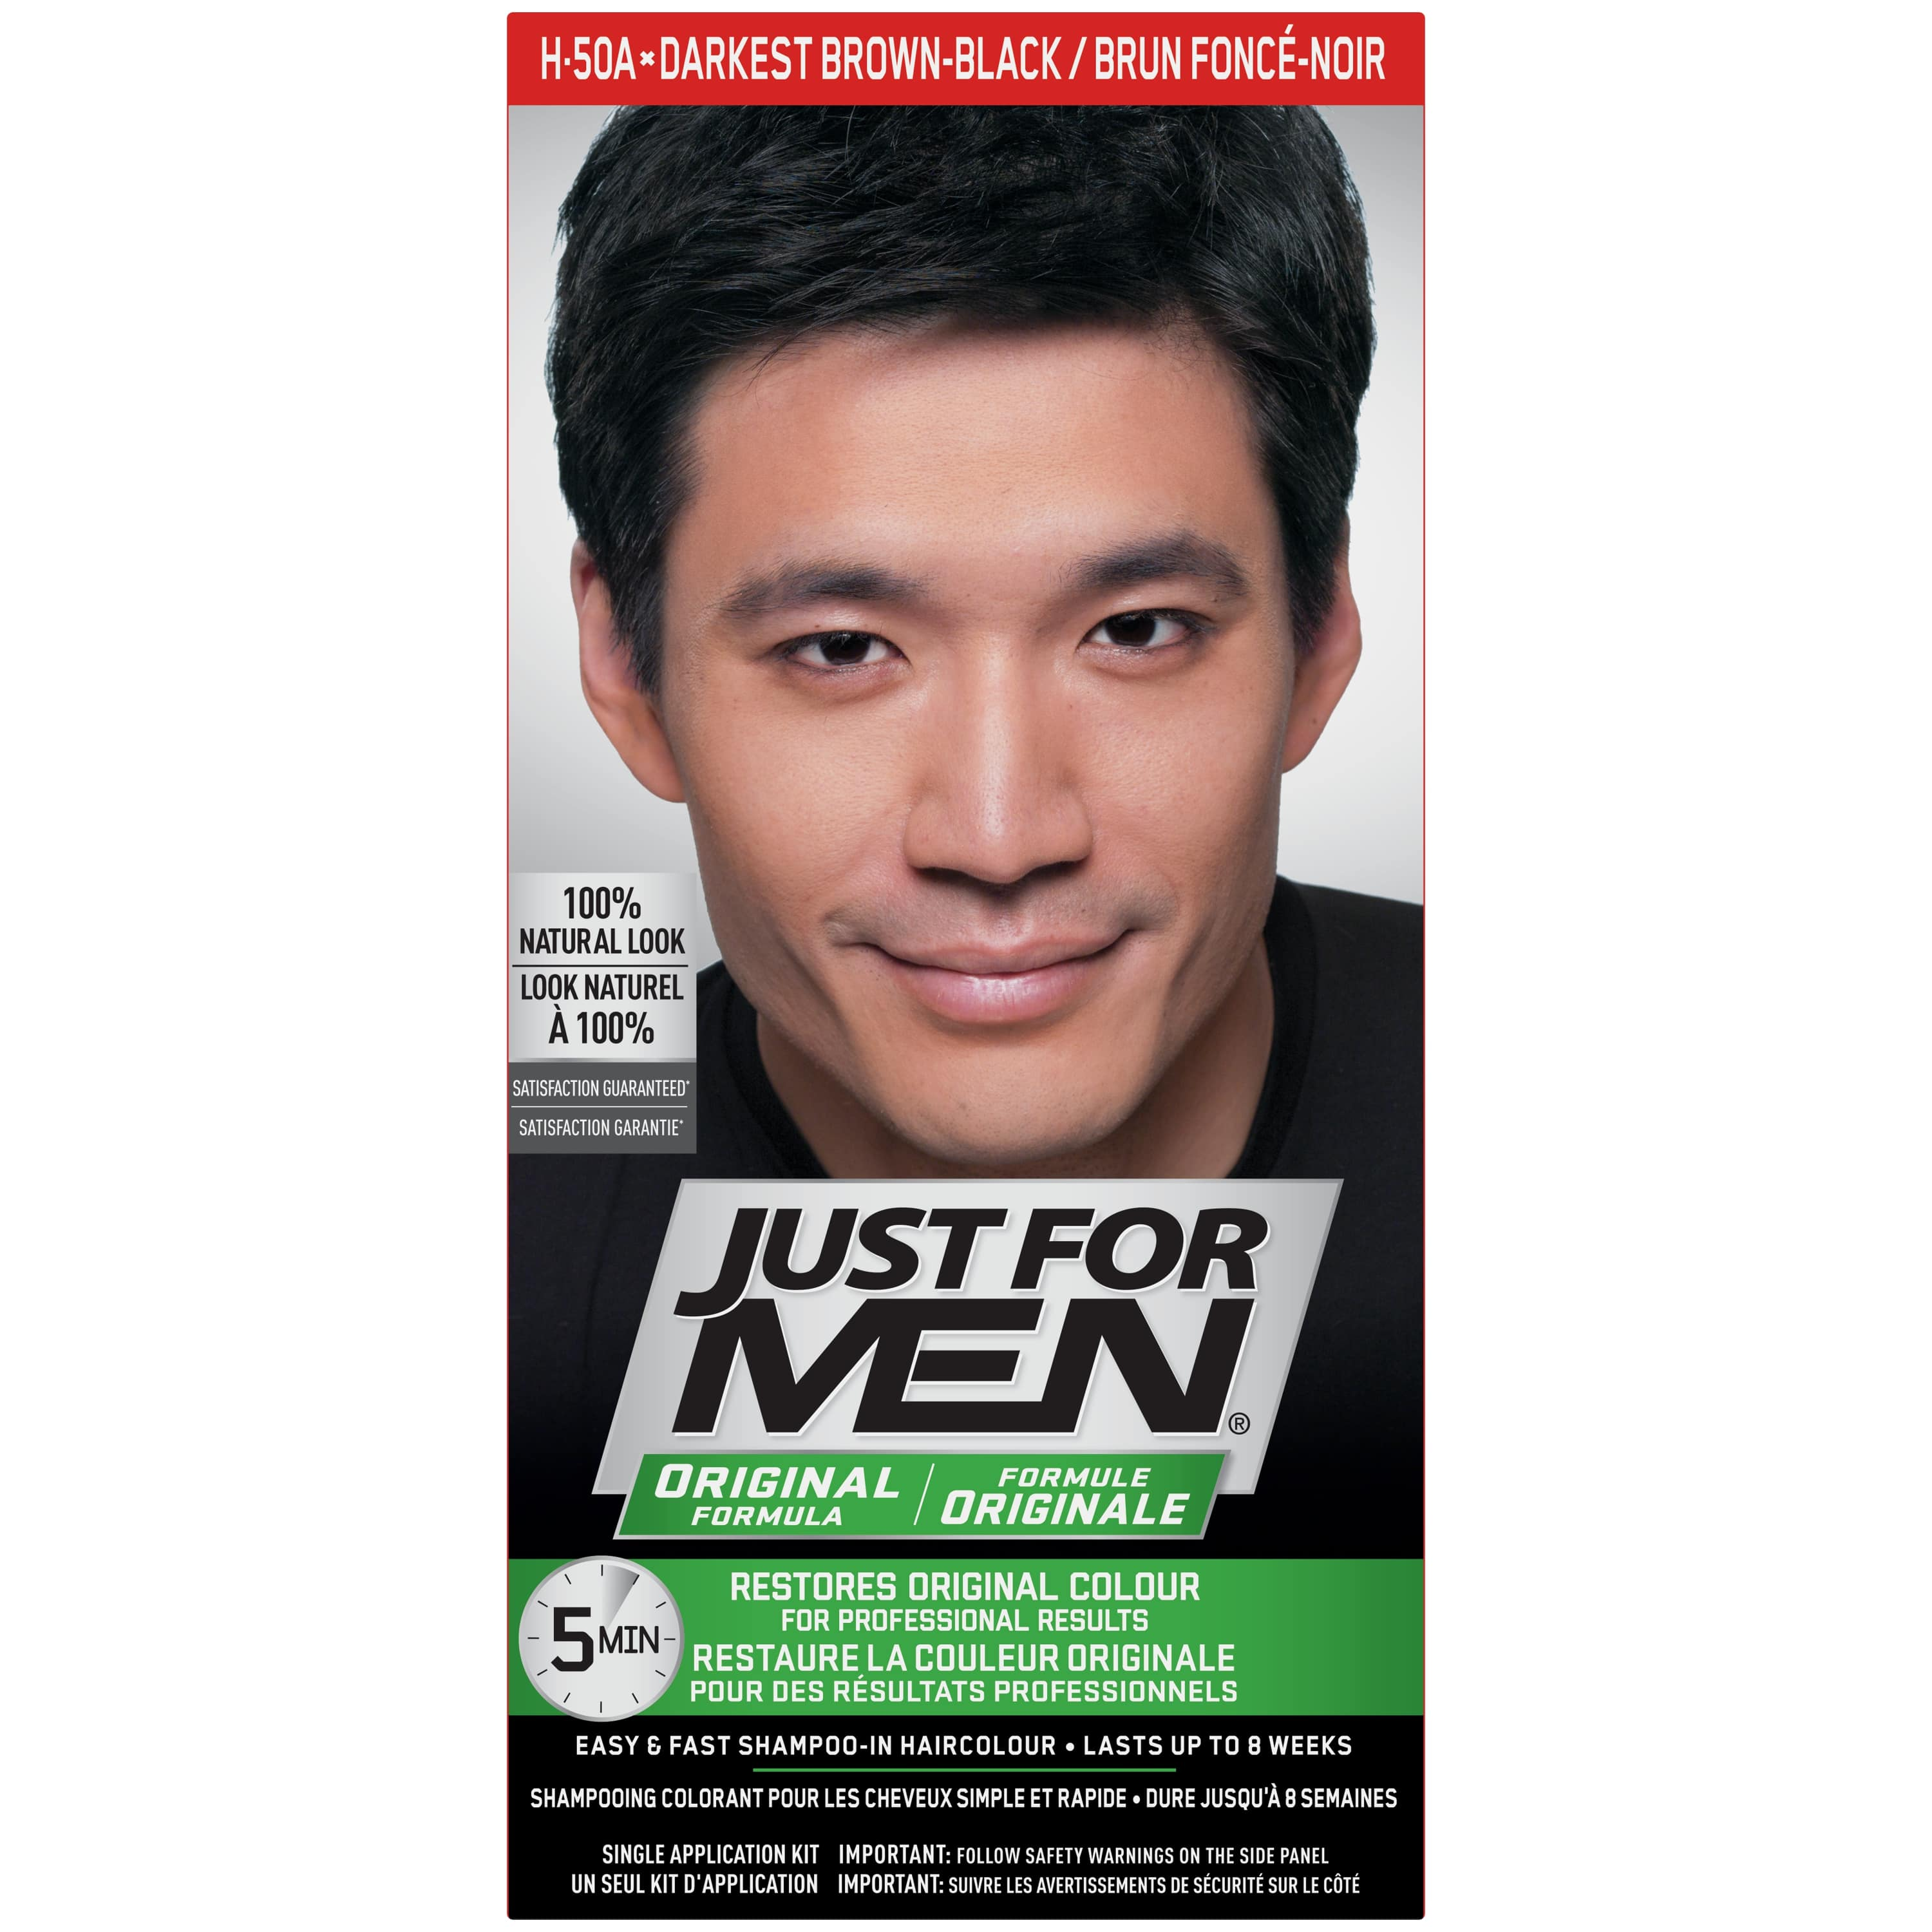 Just for Men Original Formula, Easy and Fast Shampoo-In Men's Hair Color, Medium Brown, Shade H-35